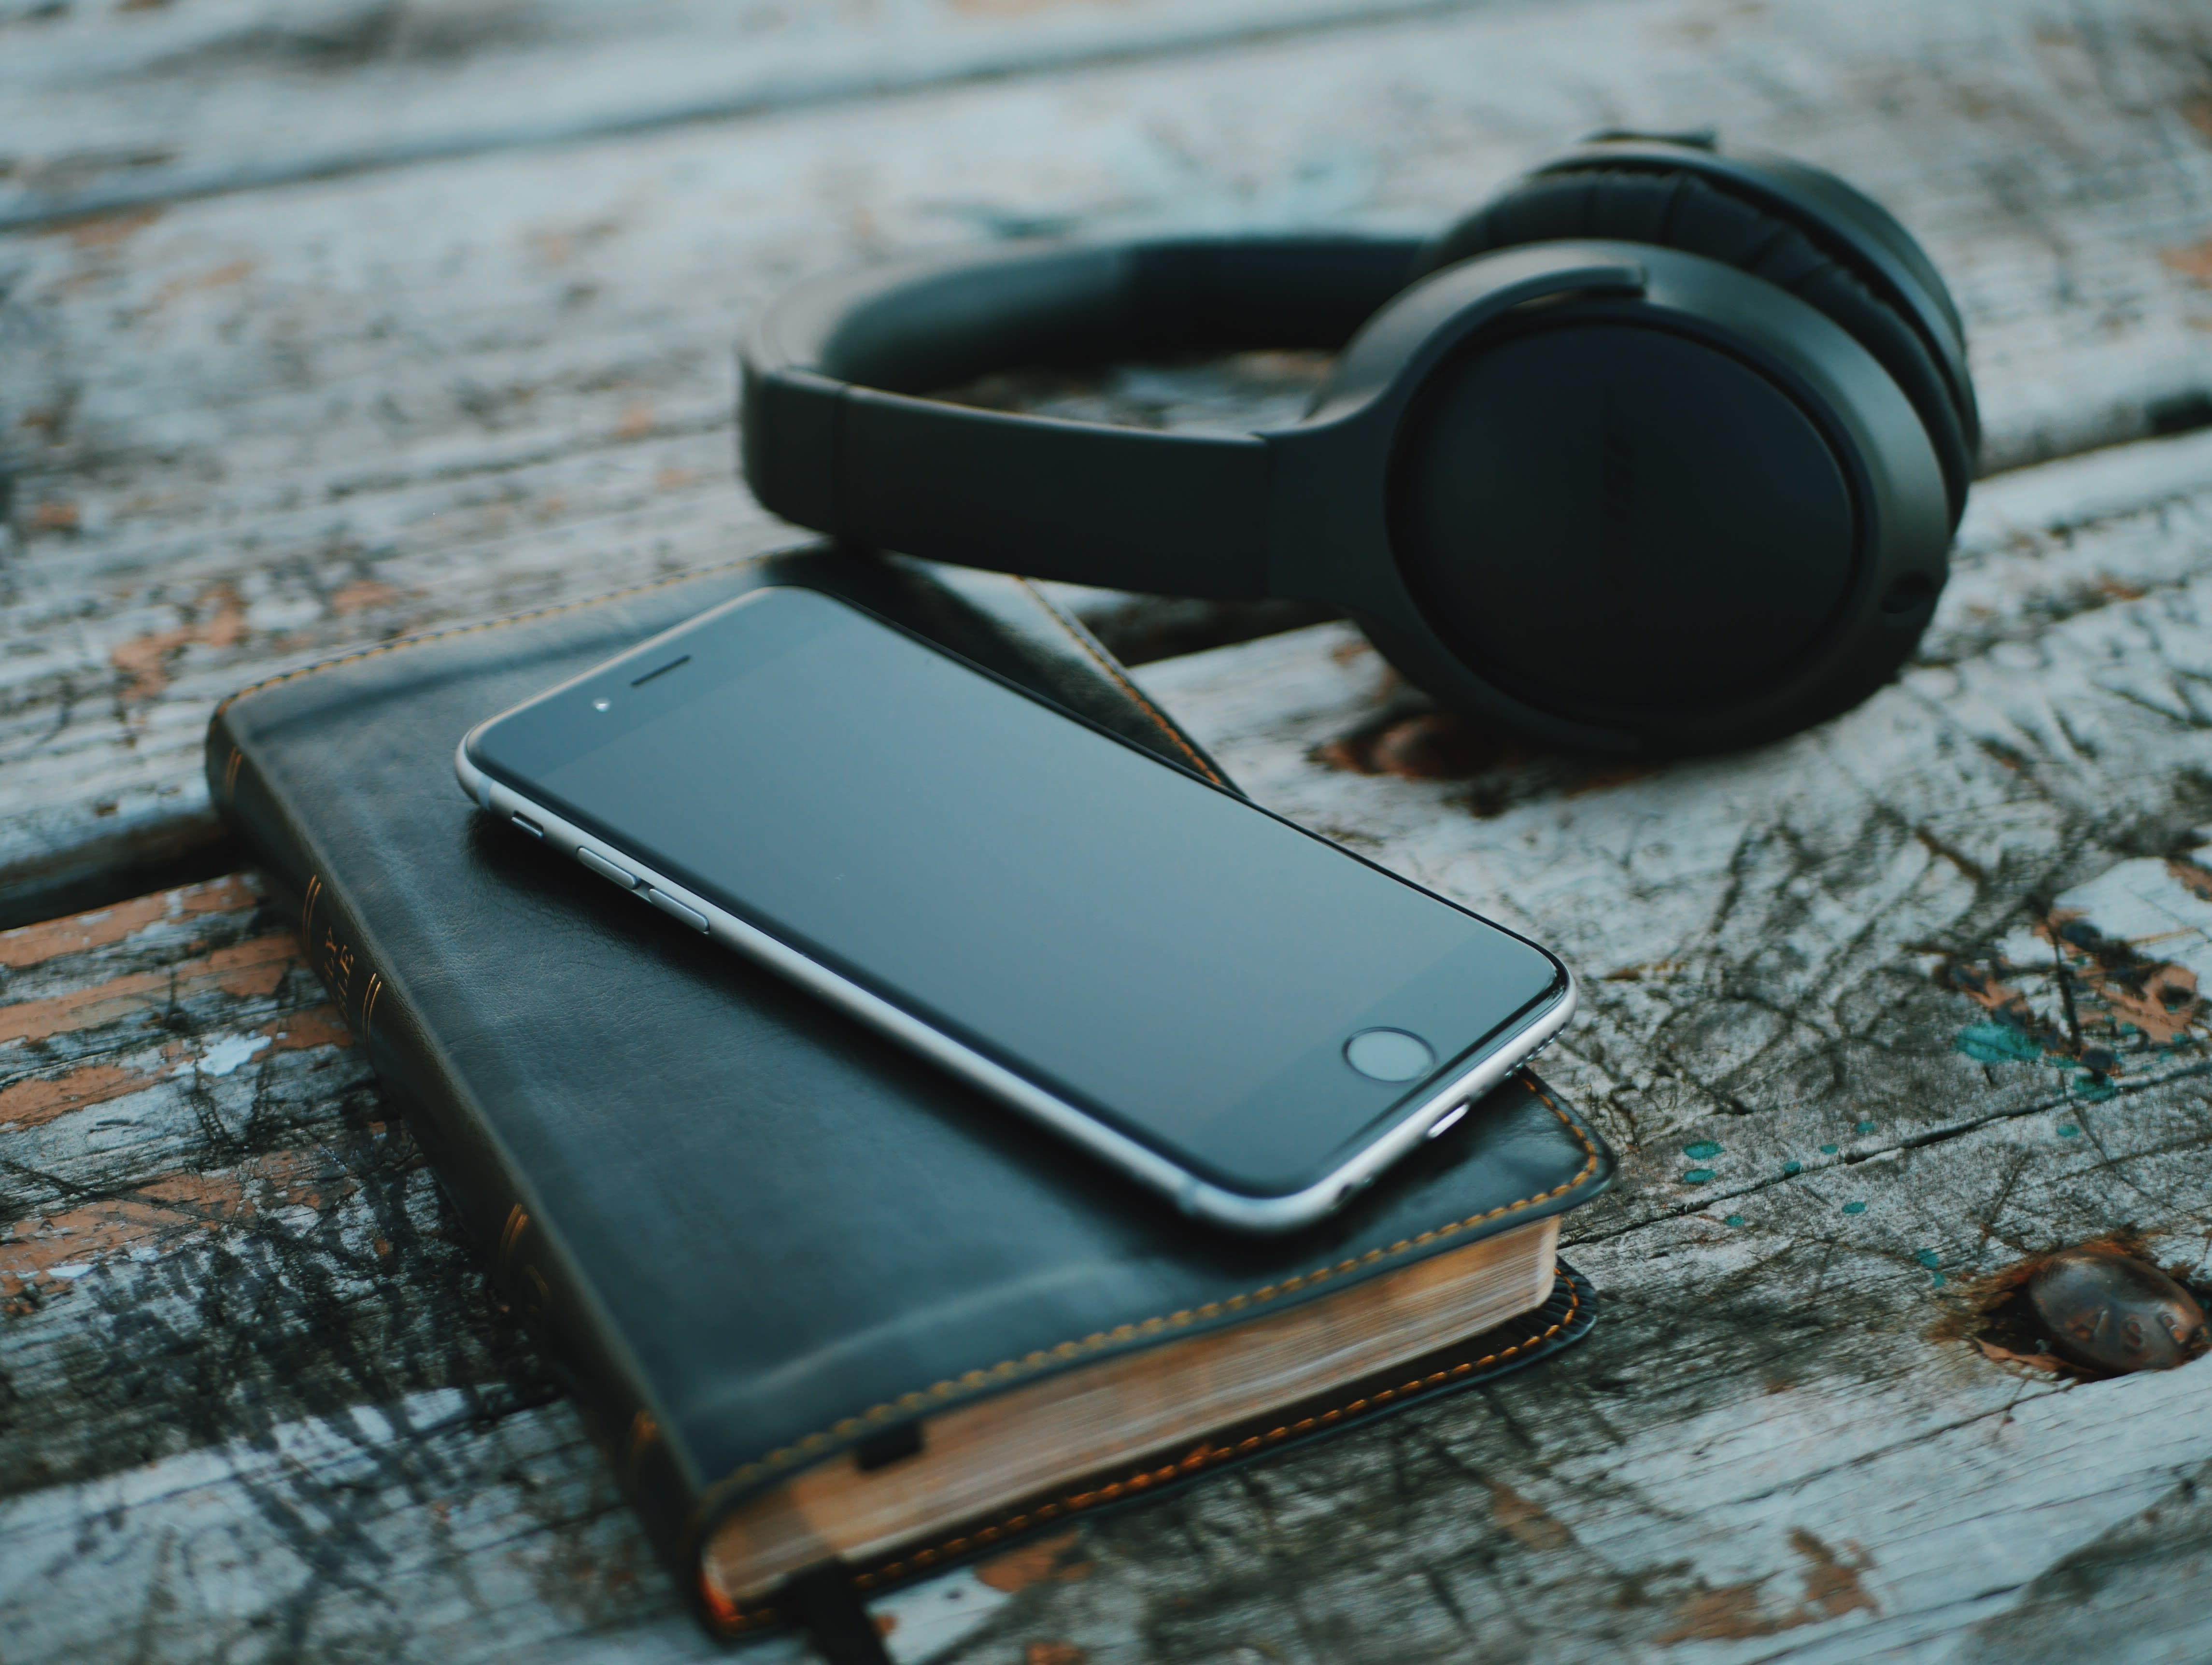 podcast headphones and iphone